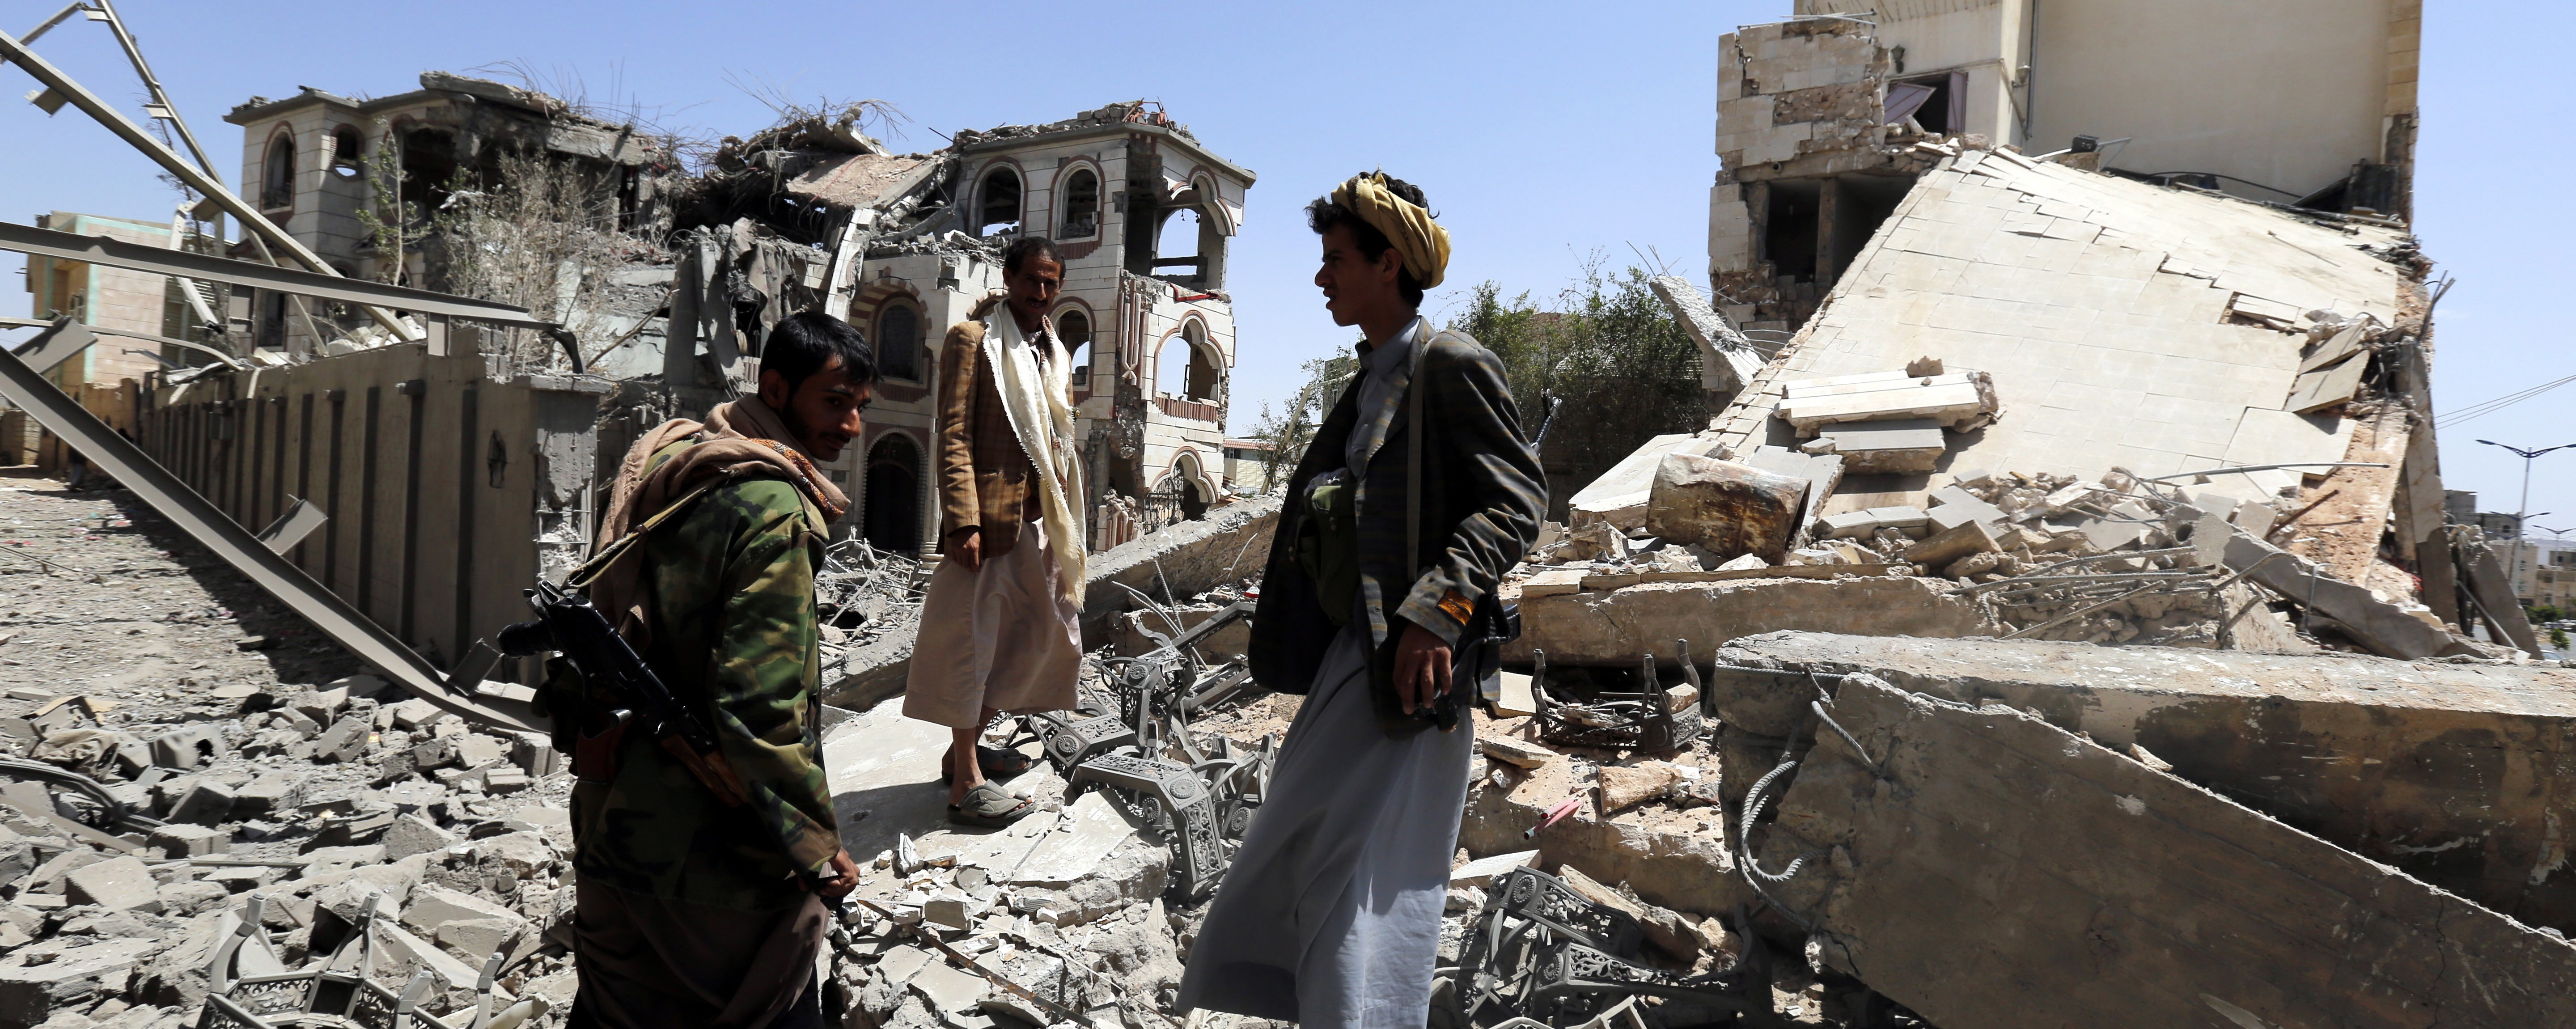 Leaked UN Email on Yemen Shows Difficulty of Negotiations — and Fears Over Al Qaeda's Growing Presence